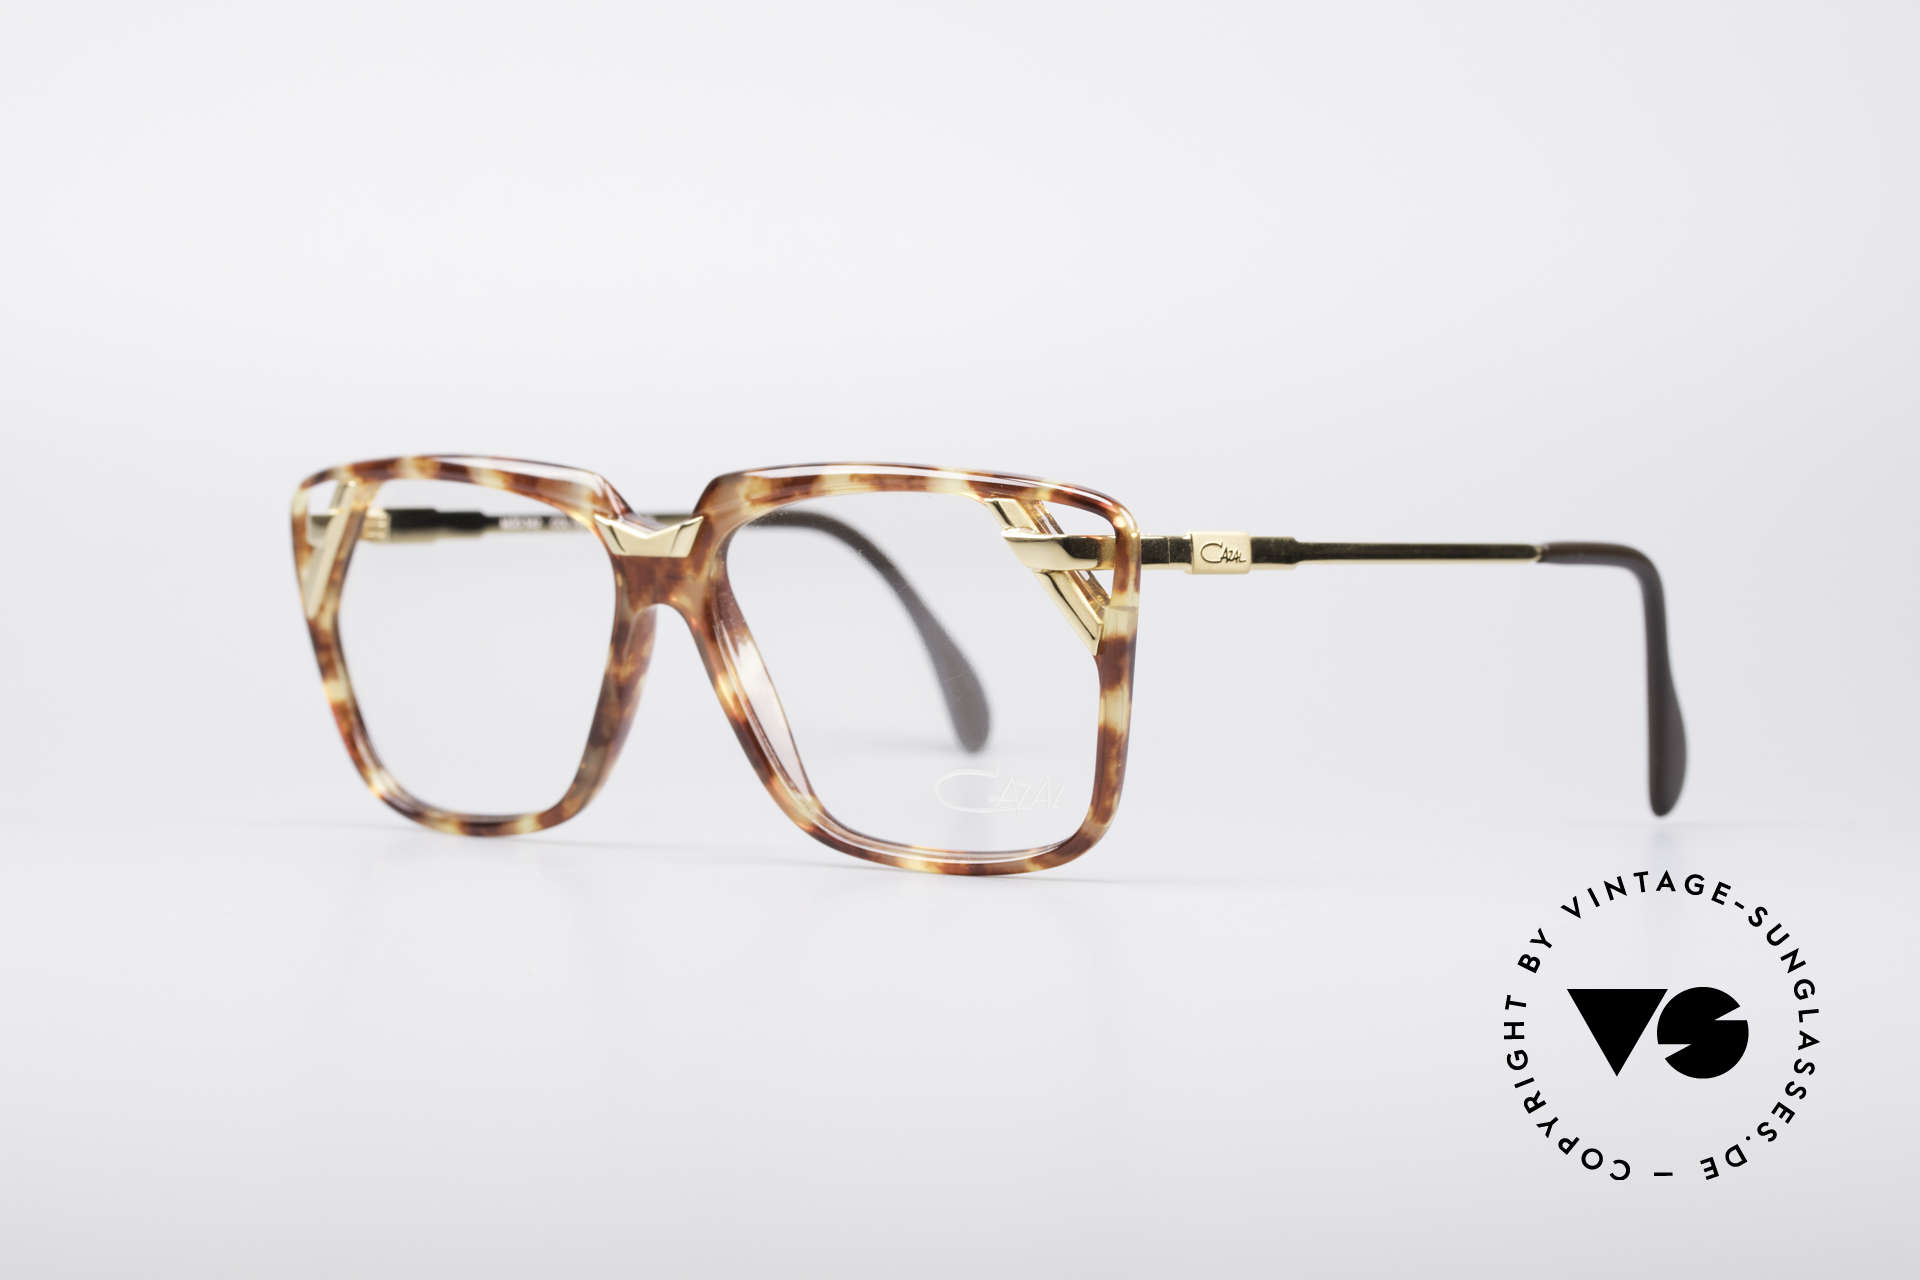 Cazal 342 90's Designer Glasses, unique combination of colors and materials, Made for Women